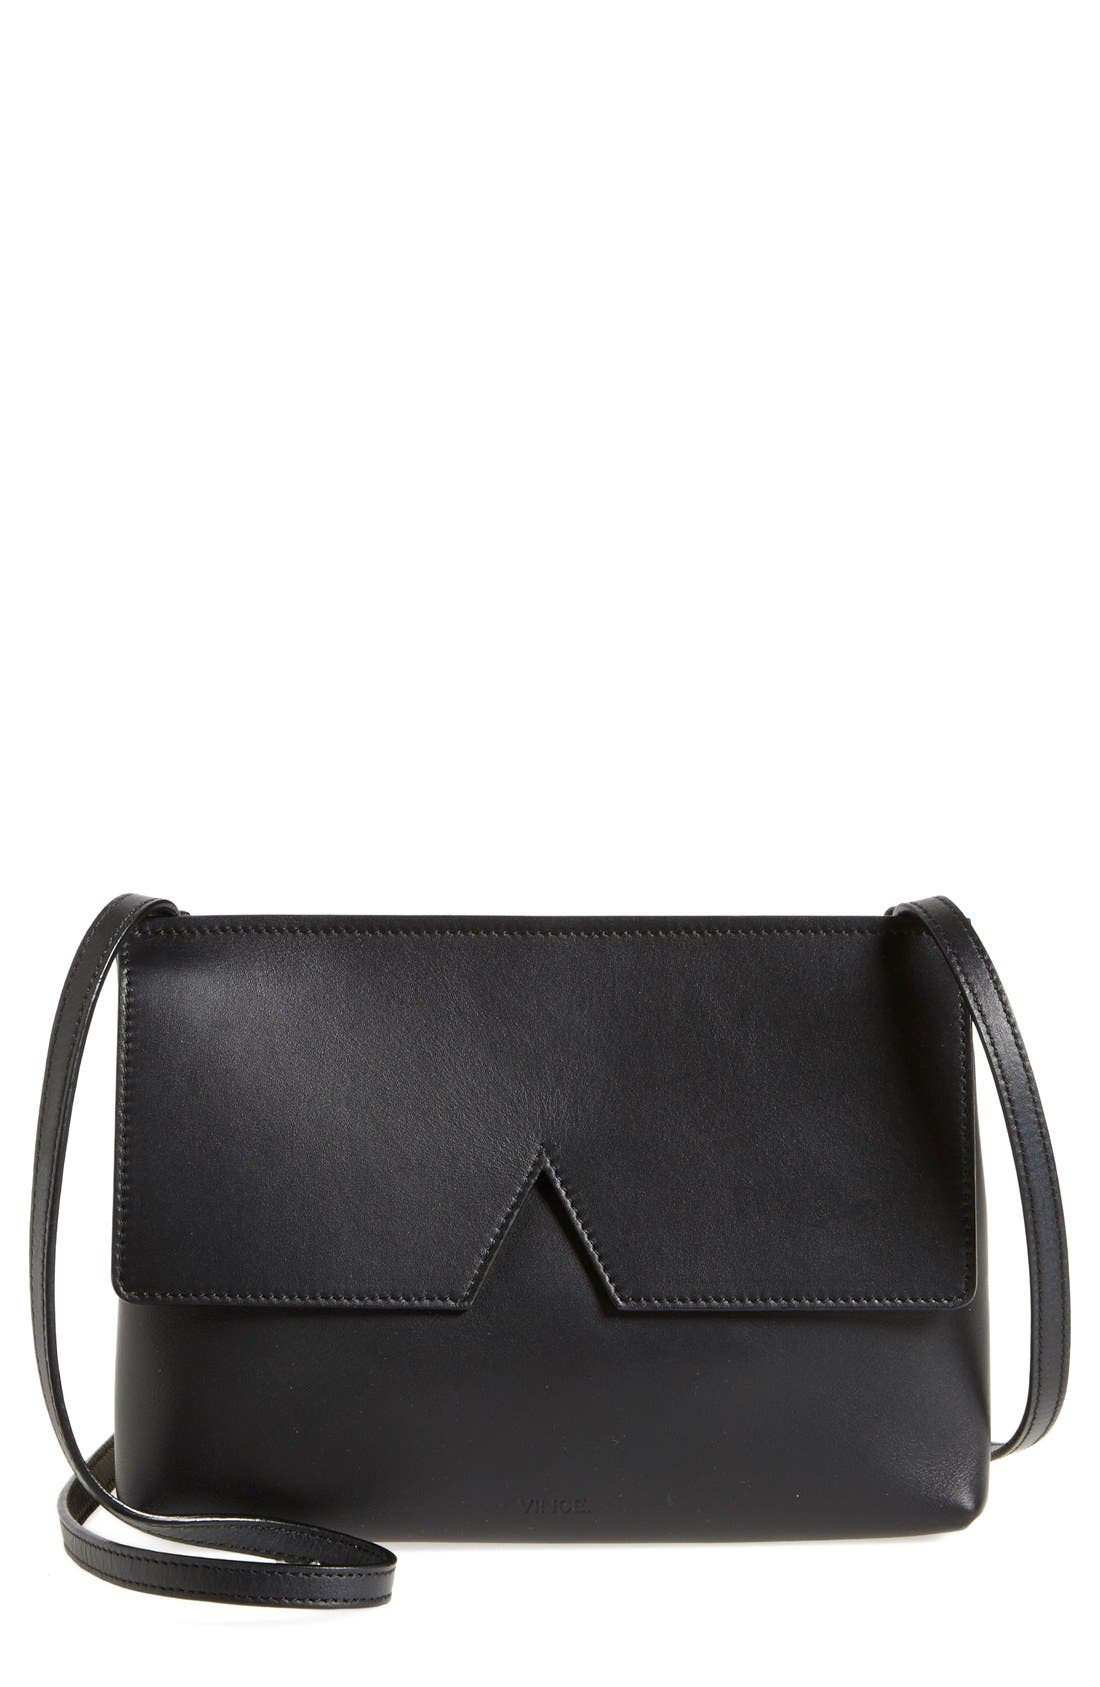 Main Image - Vince 'Signature Collection - Small' Leather Crossbody Bag